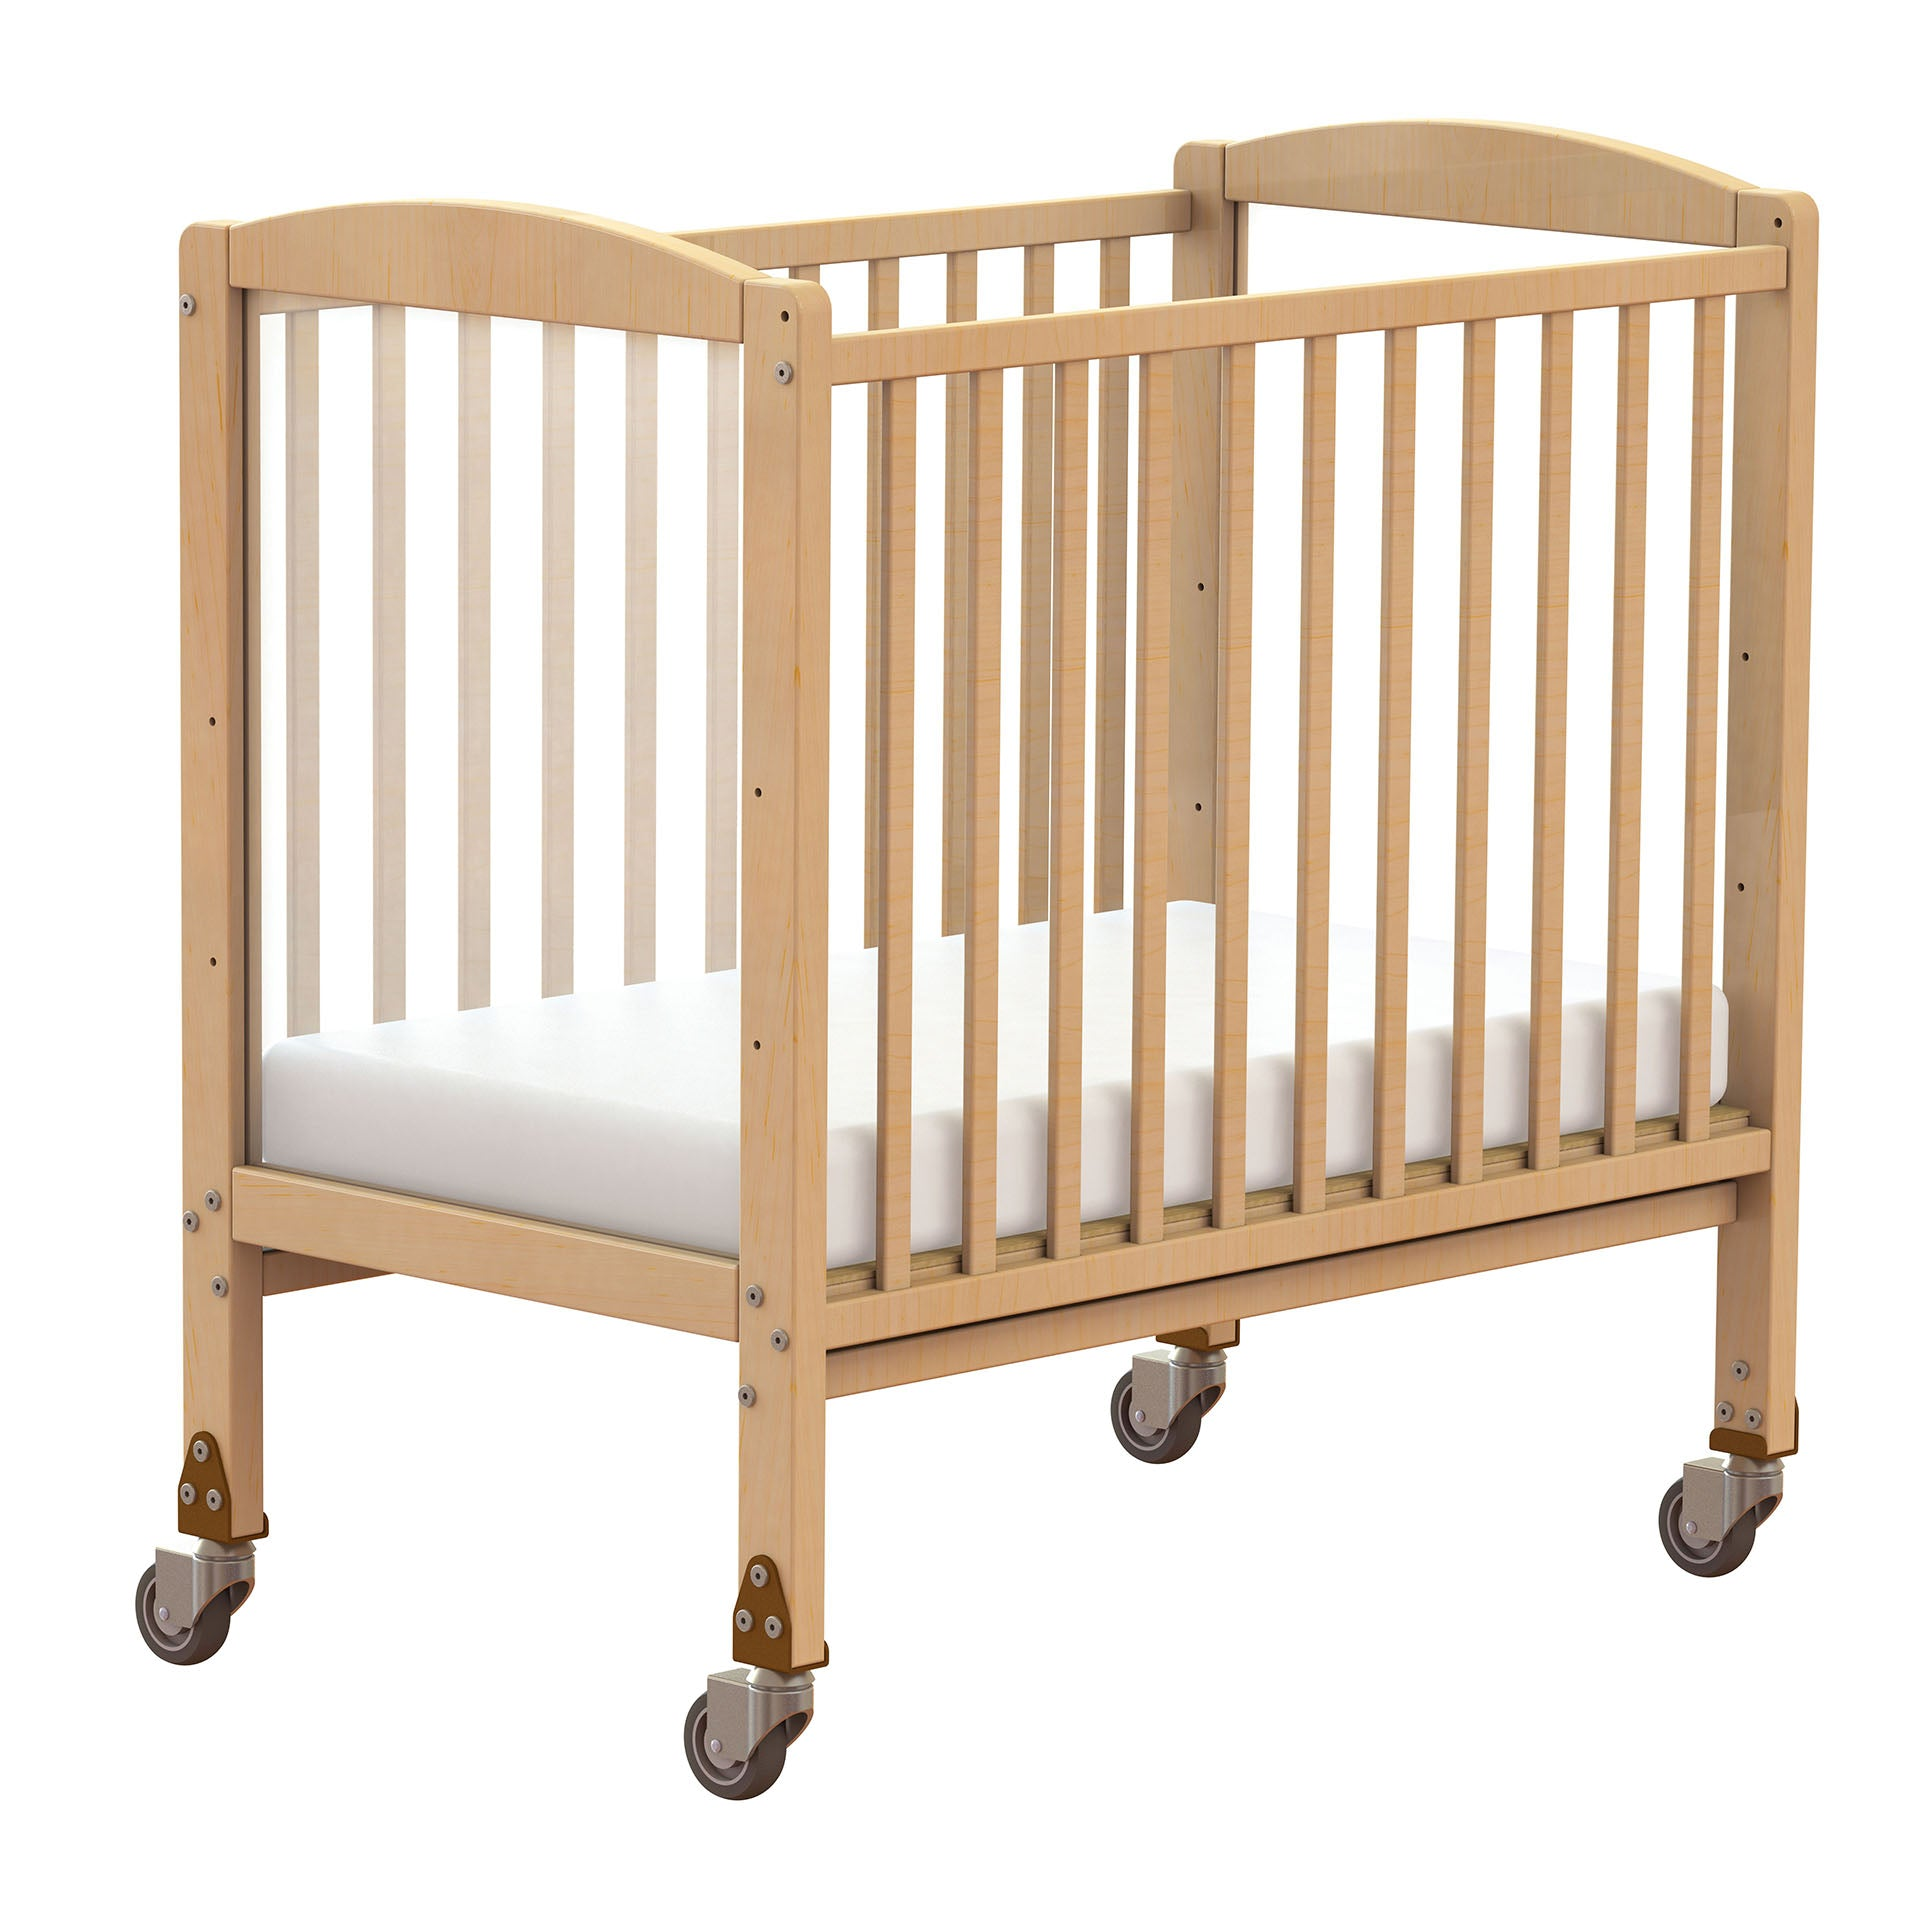 Evacuation Cot - EASE